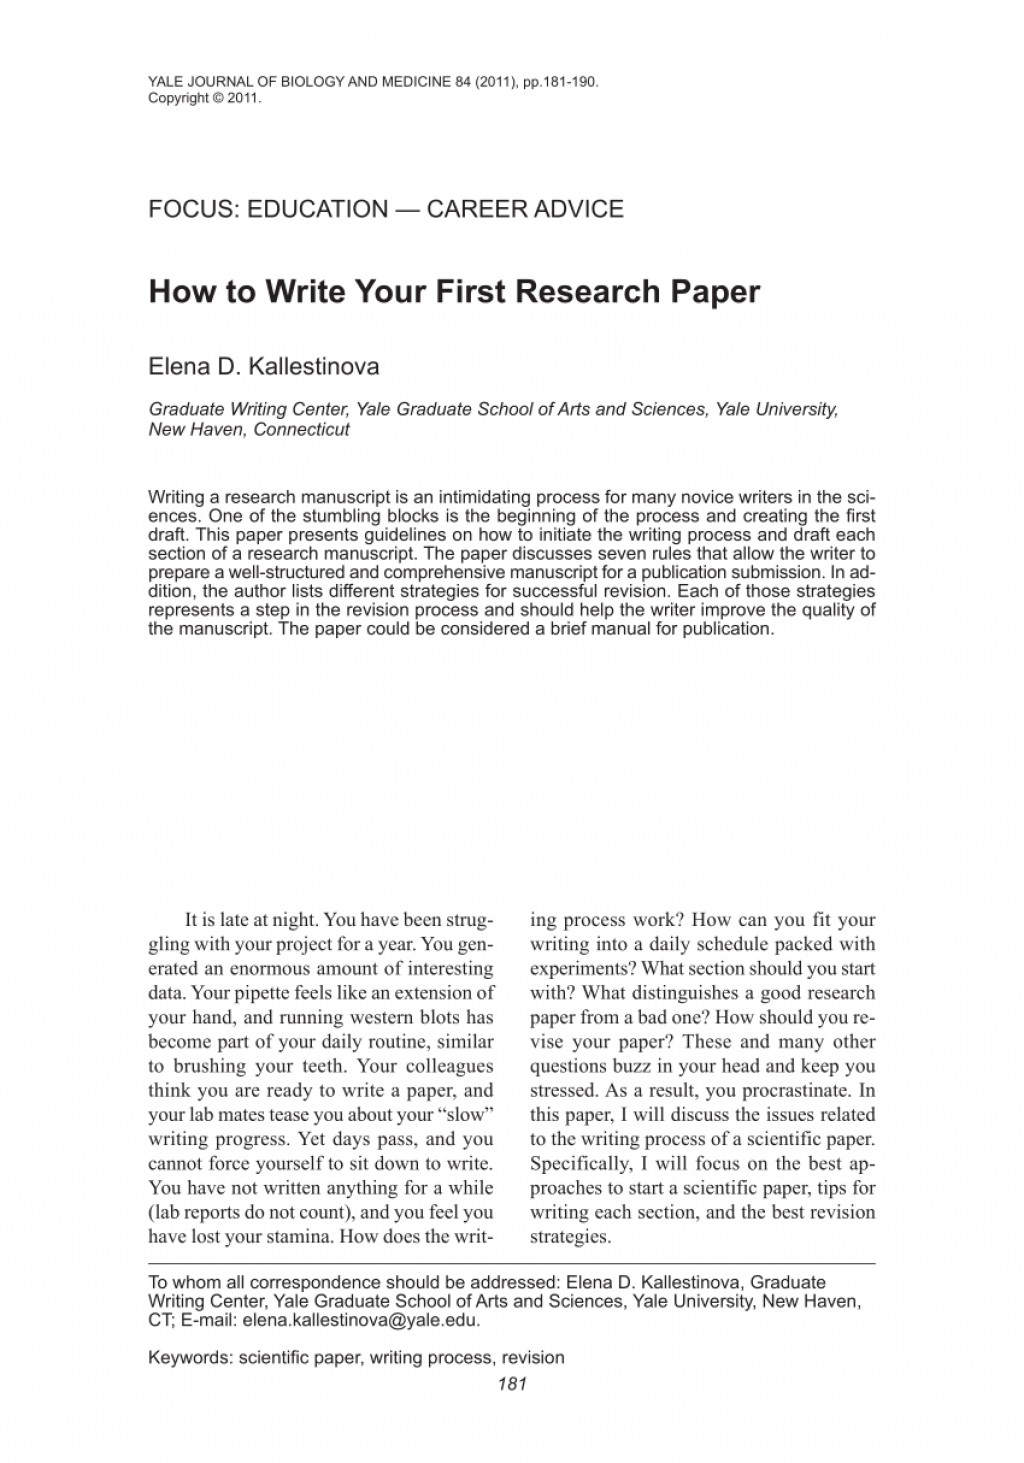 017 Largepreview Research Paper Biology Impressive Outline How To Write A Scientific Large